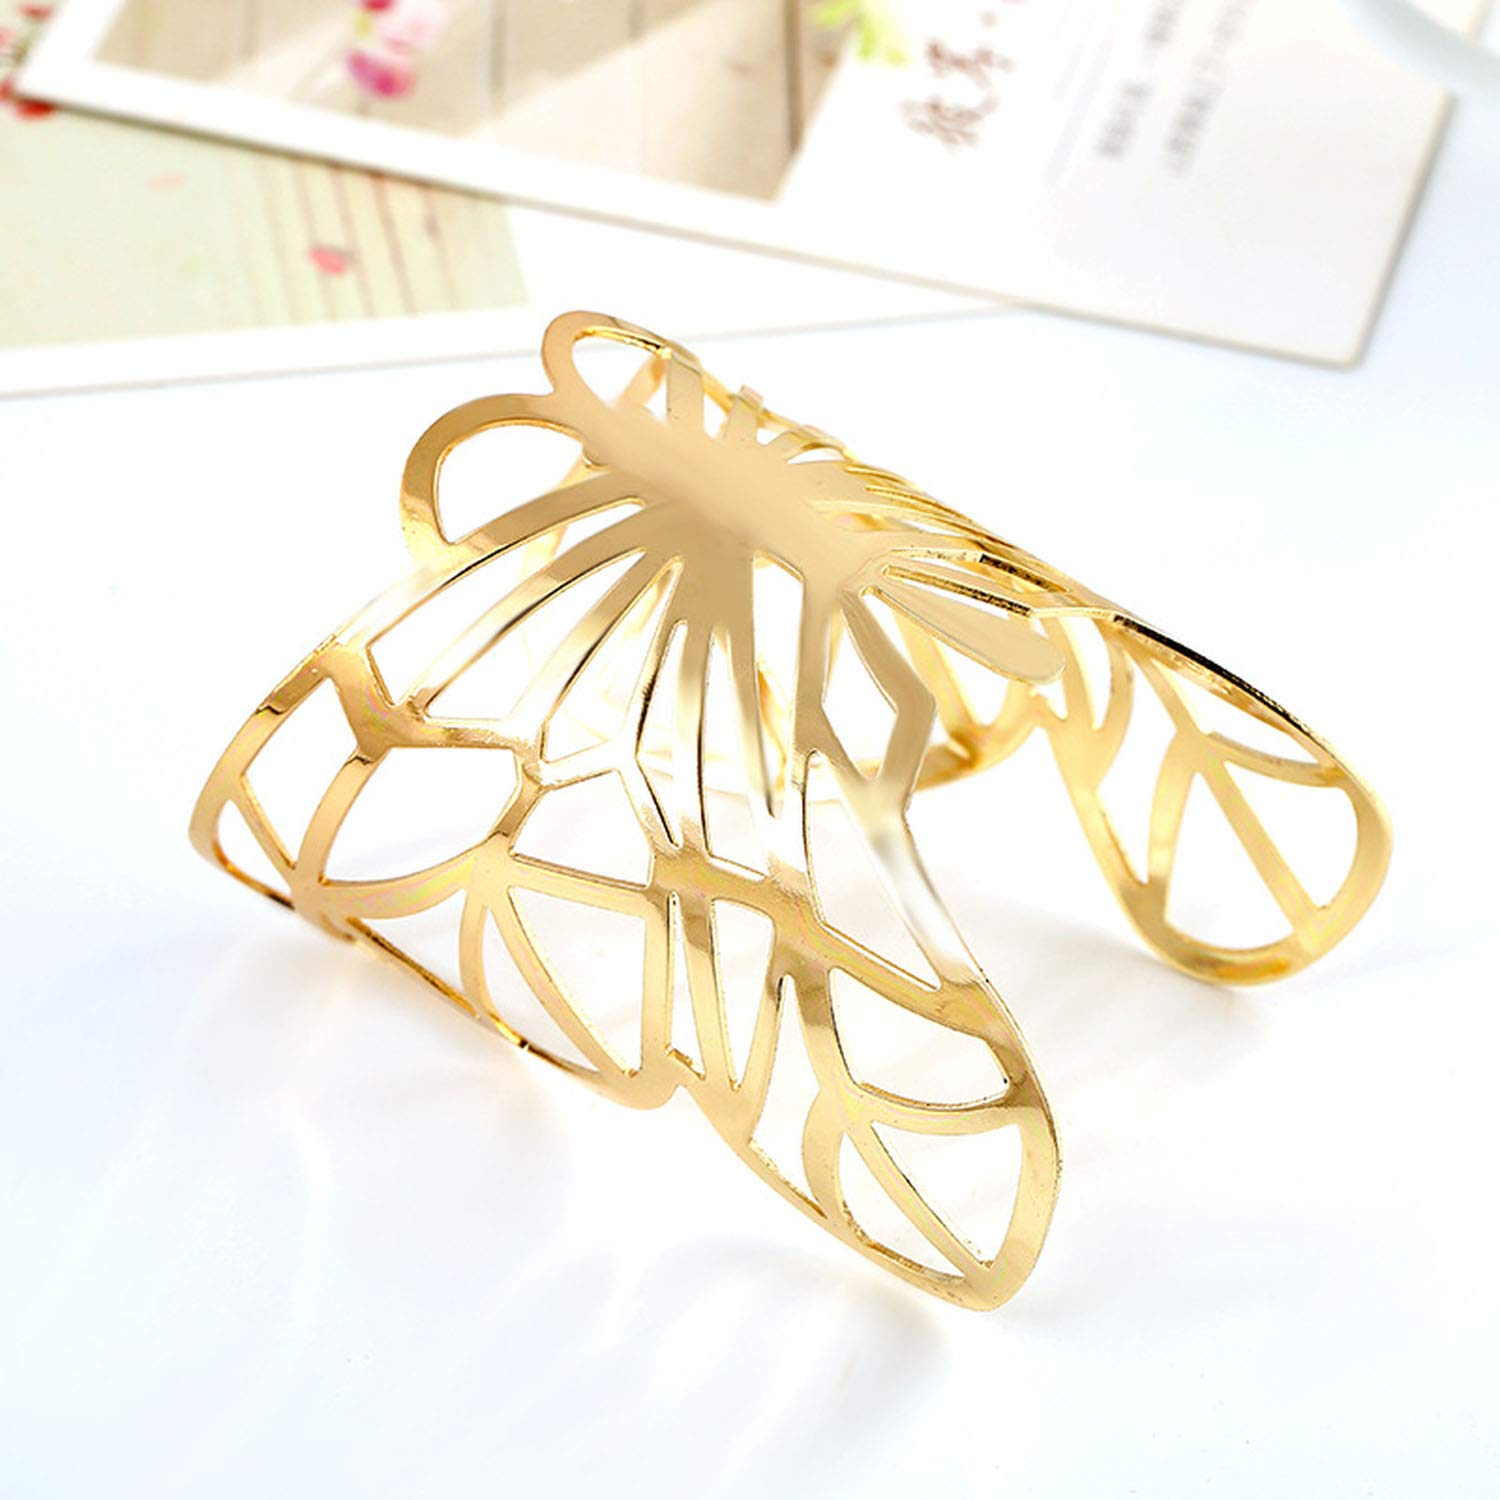 xiaoxiaoland Metal Plated Hollow Butterfly Bangle Women Wide Cuff Bangle Geometric Bracelet Wristband Accessories